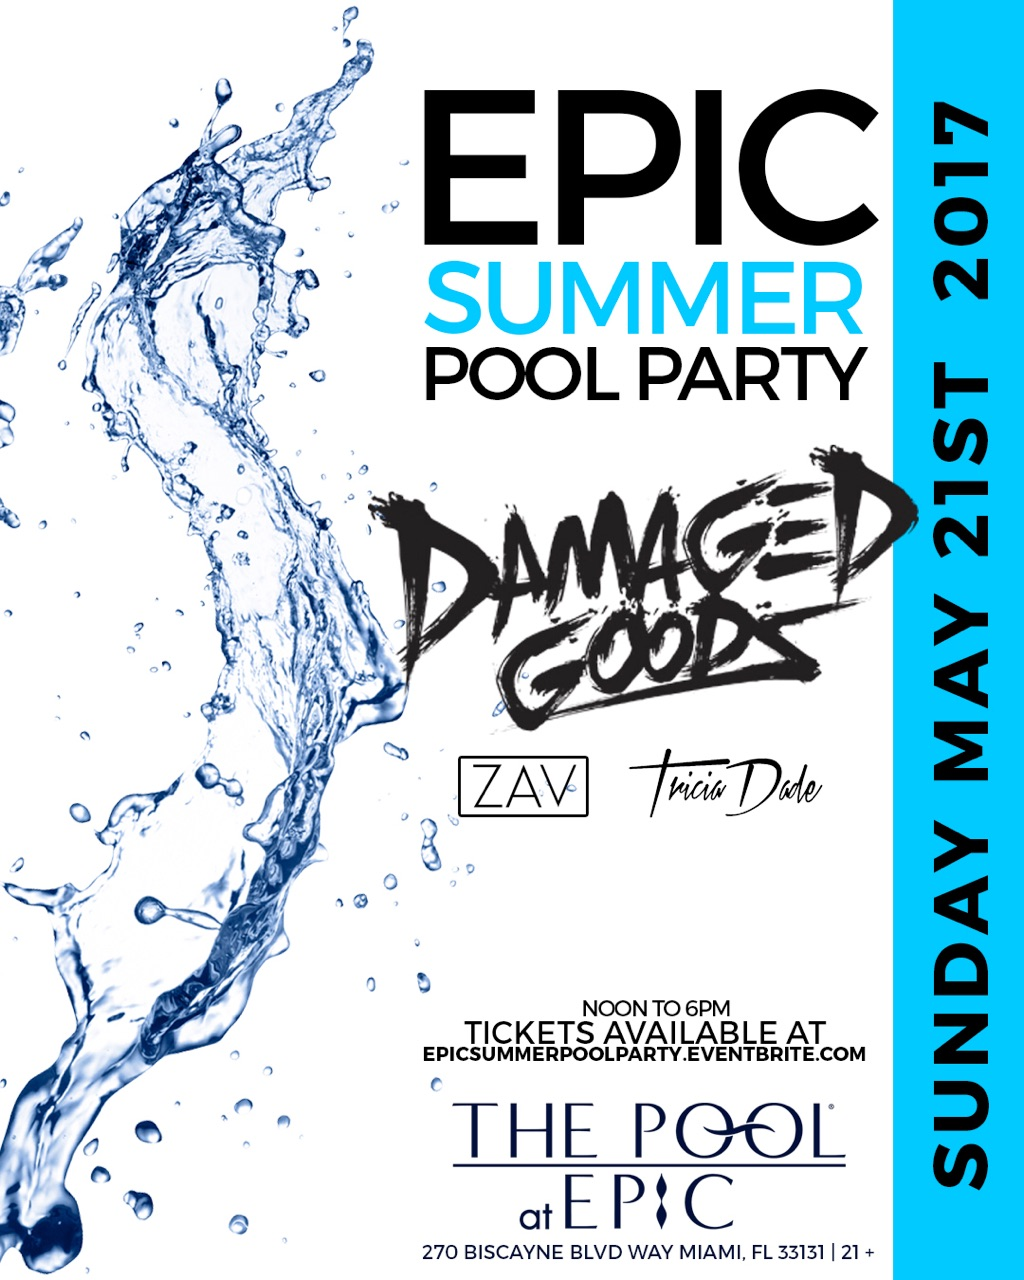 5-21-17 - EPIC SUMMER POOL PARTY.JPG